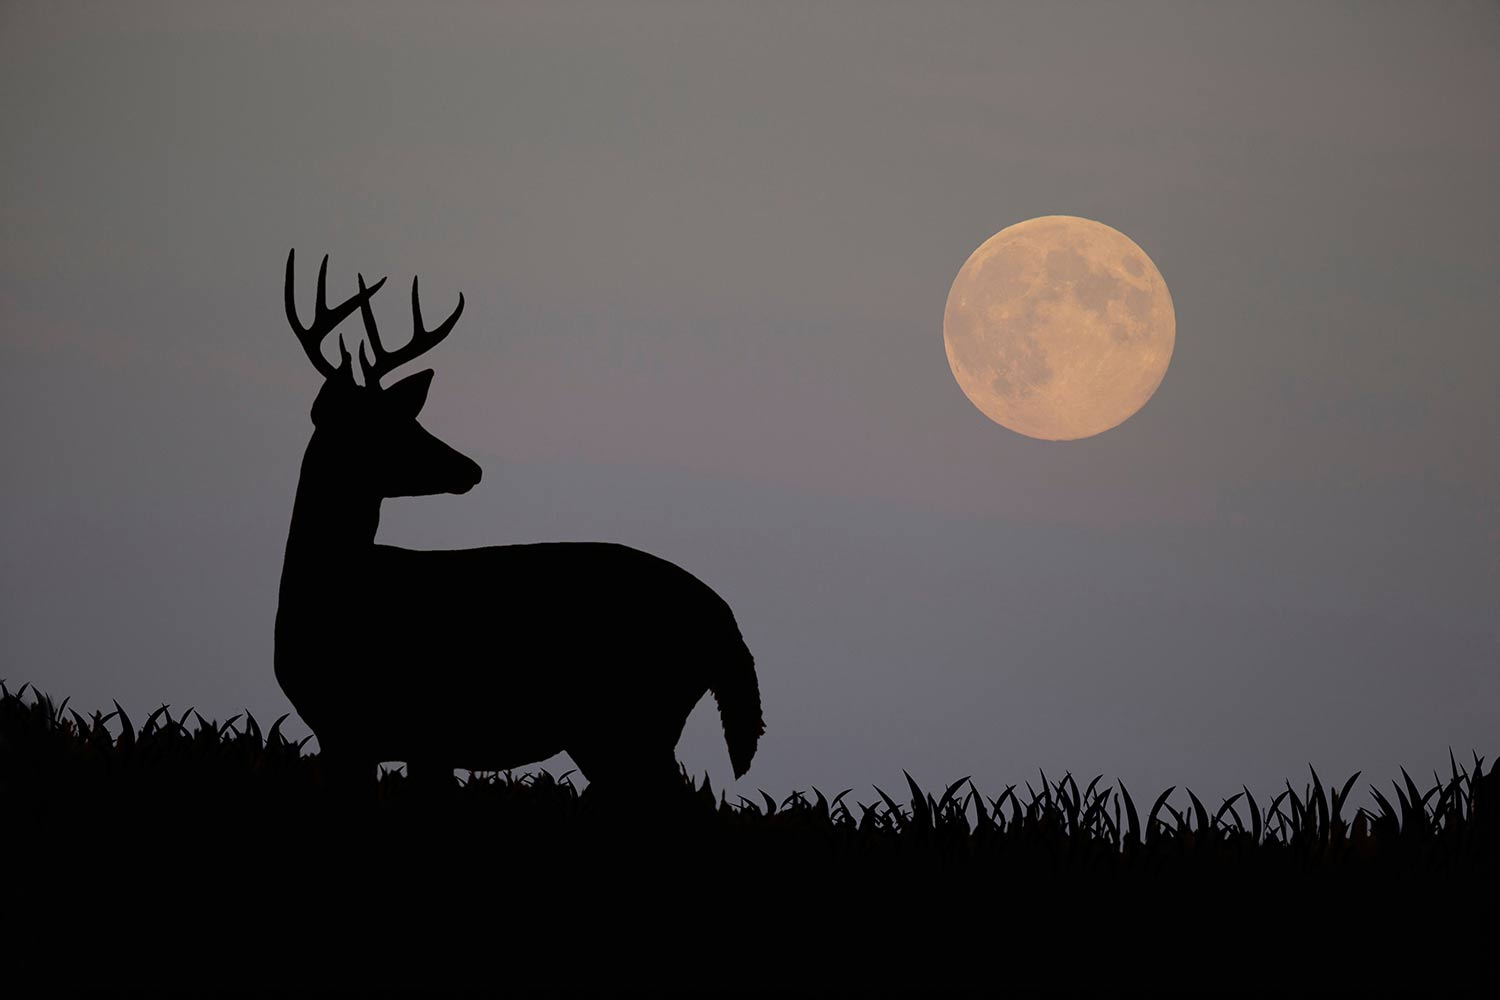 Best Time To Hunt Deer Moon Phase 2020 How Moon Phases Will Impact Deer Hunting During the Rut this